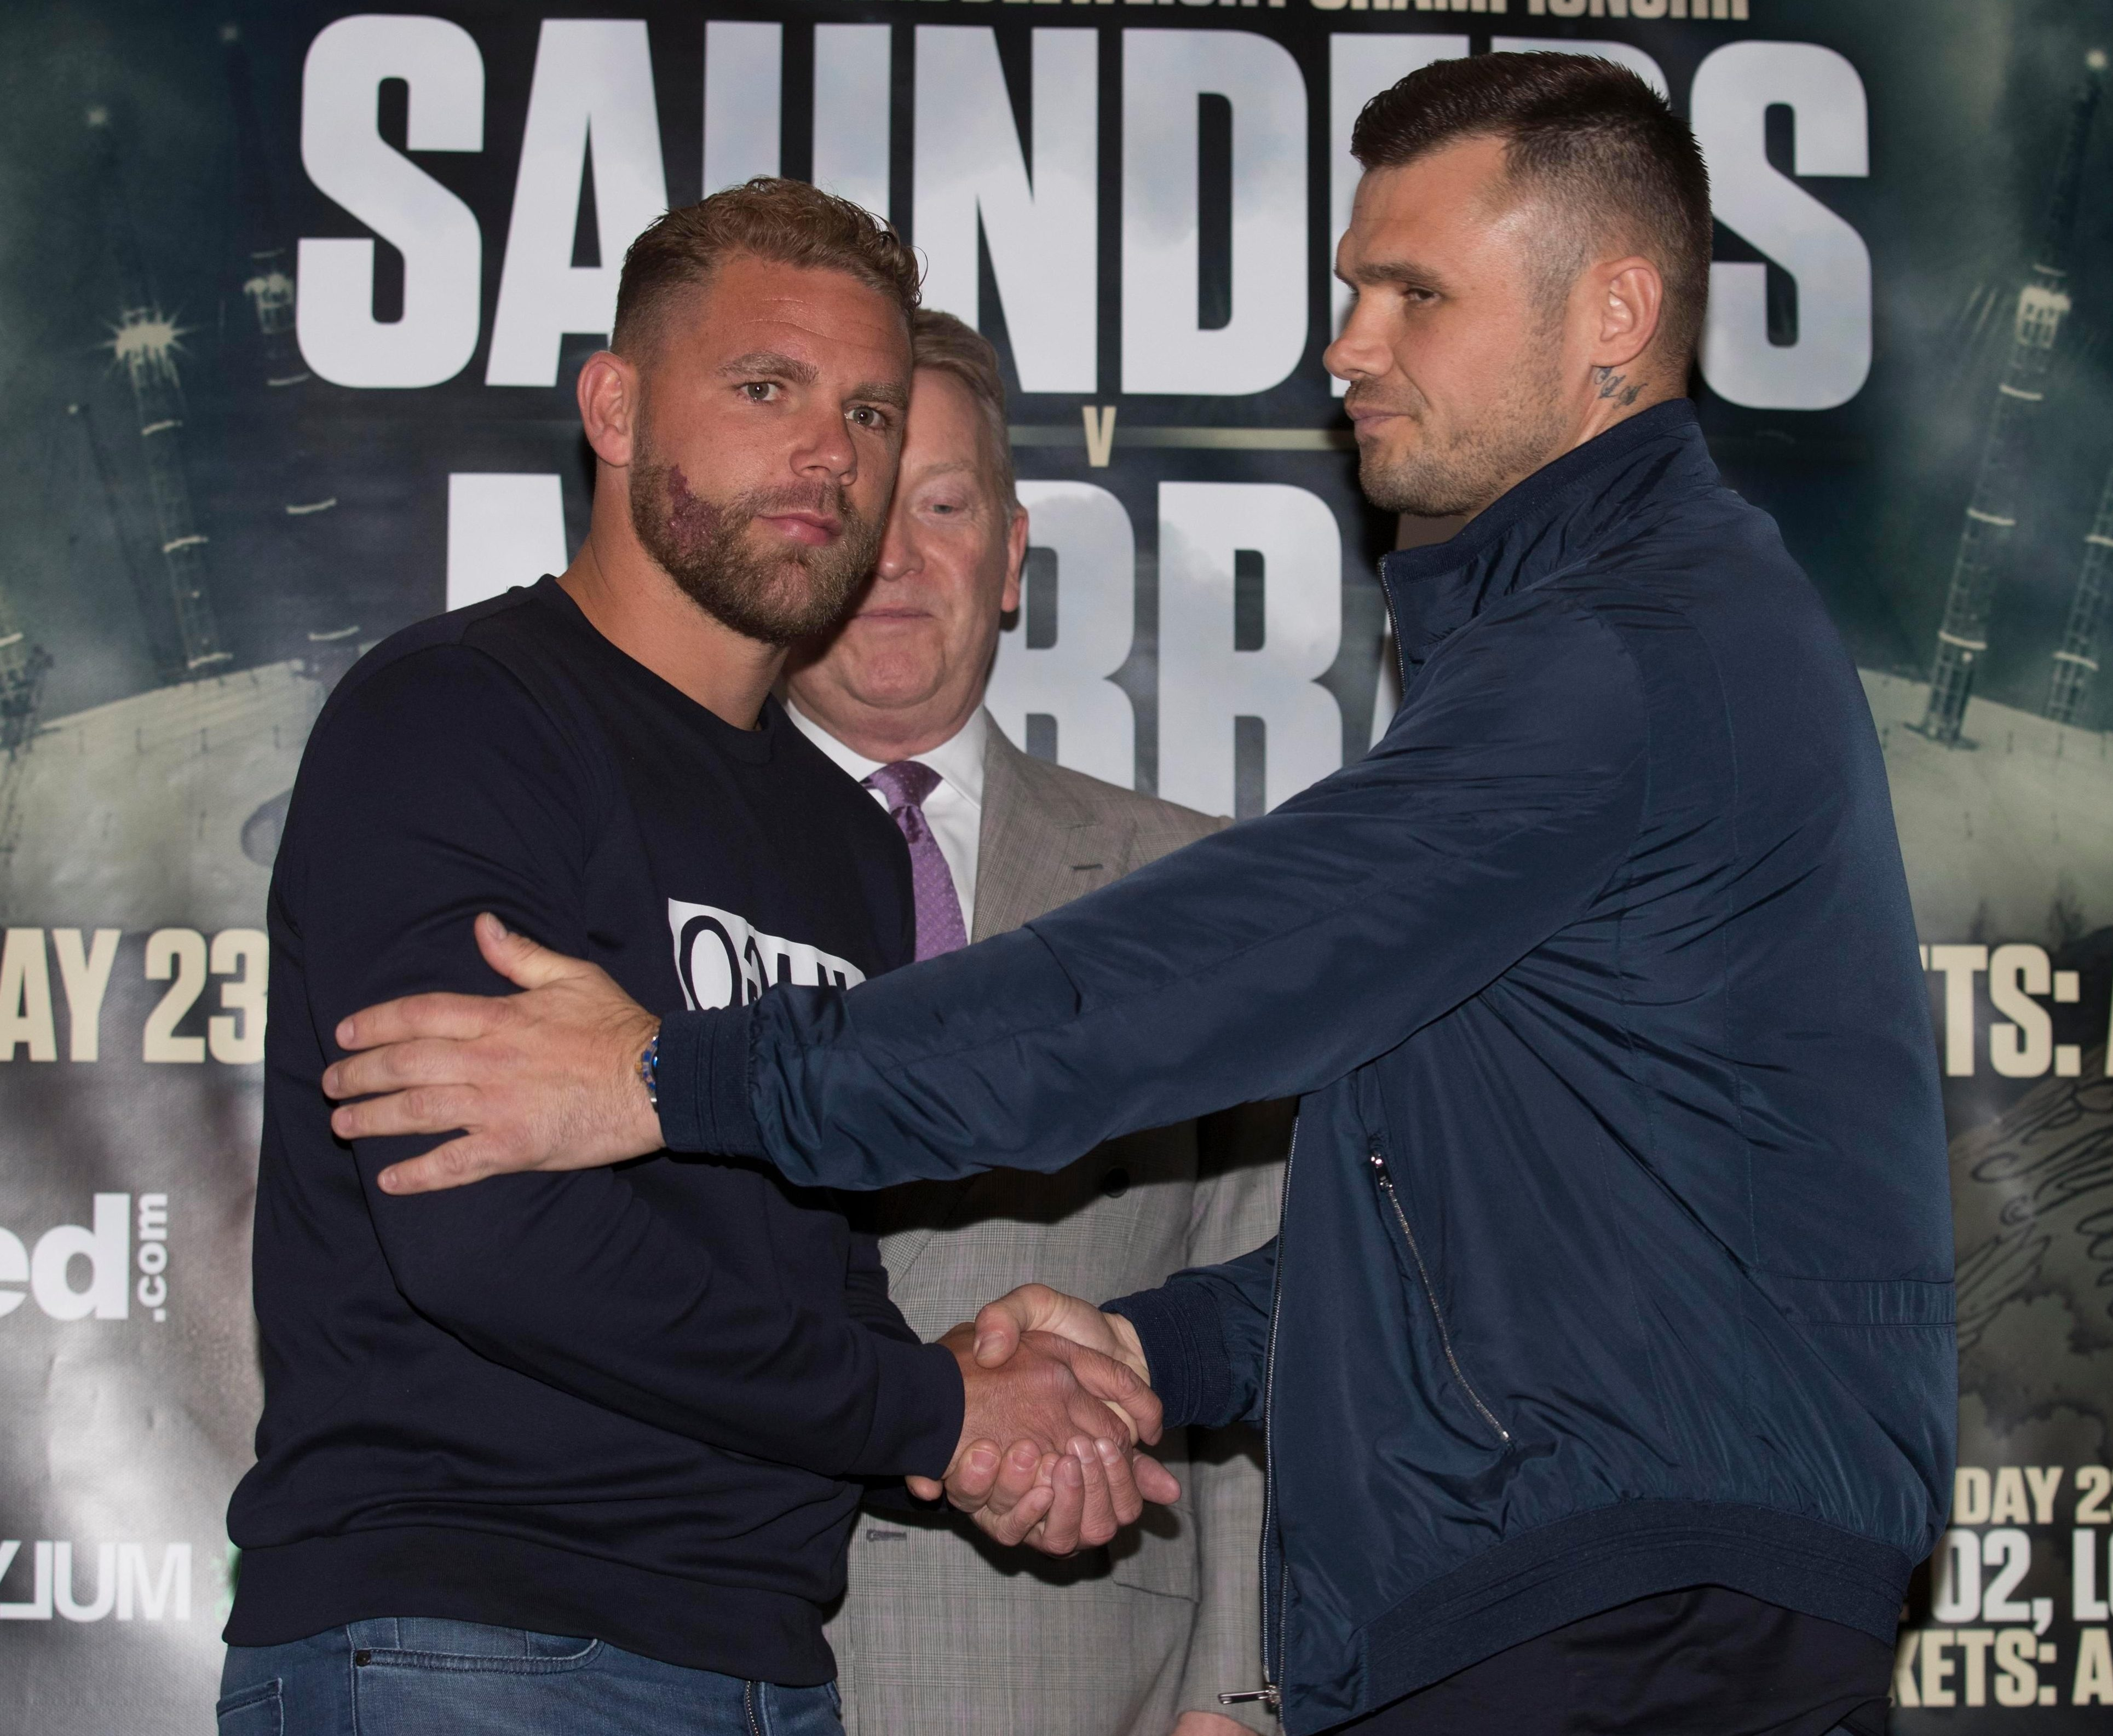 The first fight was cancelled in April due to Saunders' getting injured, now the second time of asking has been blown away too